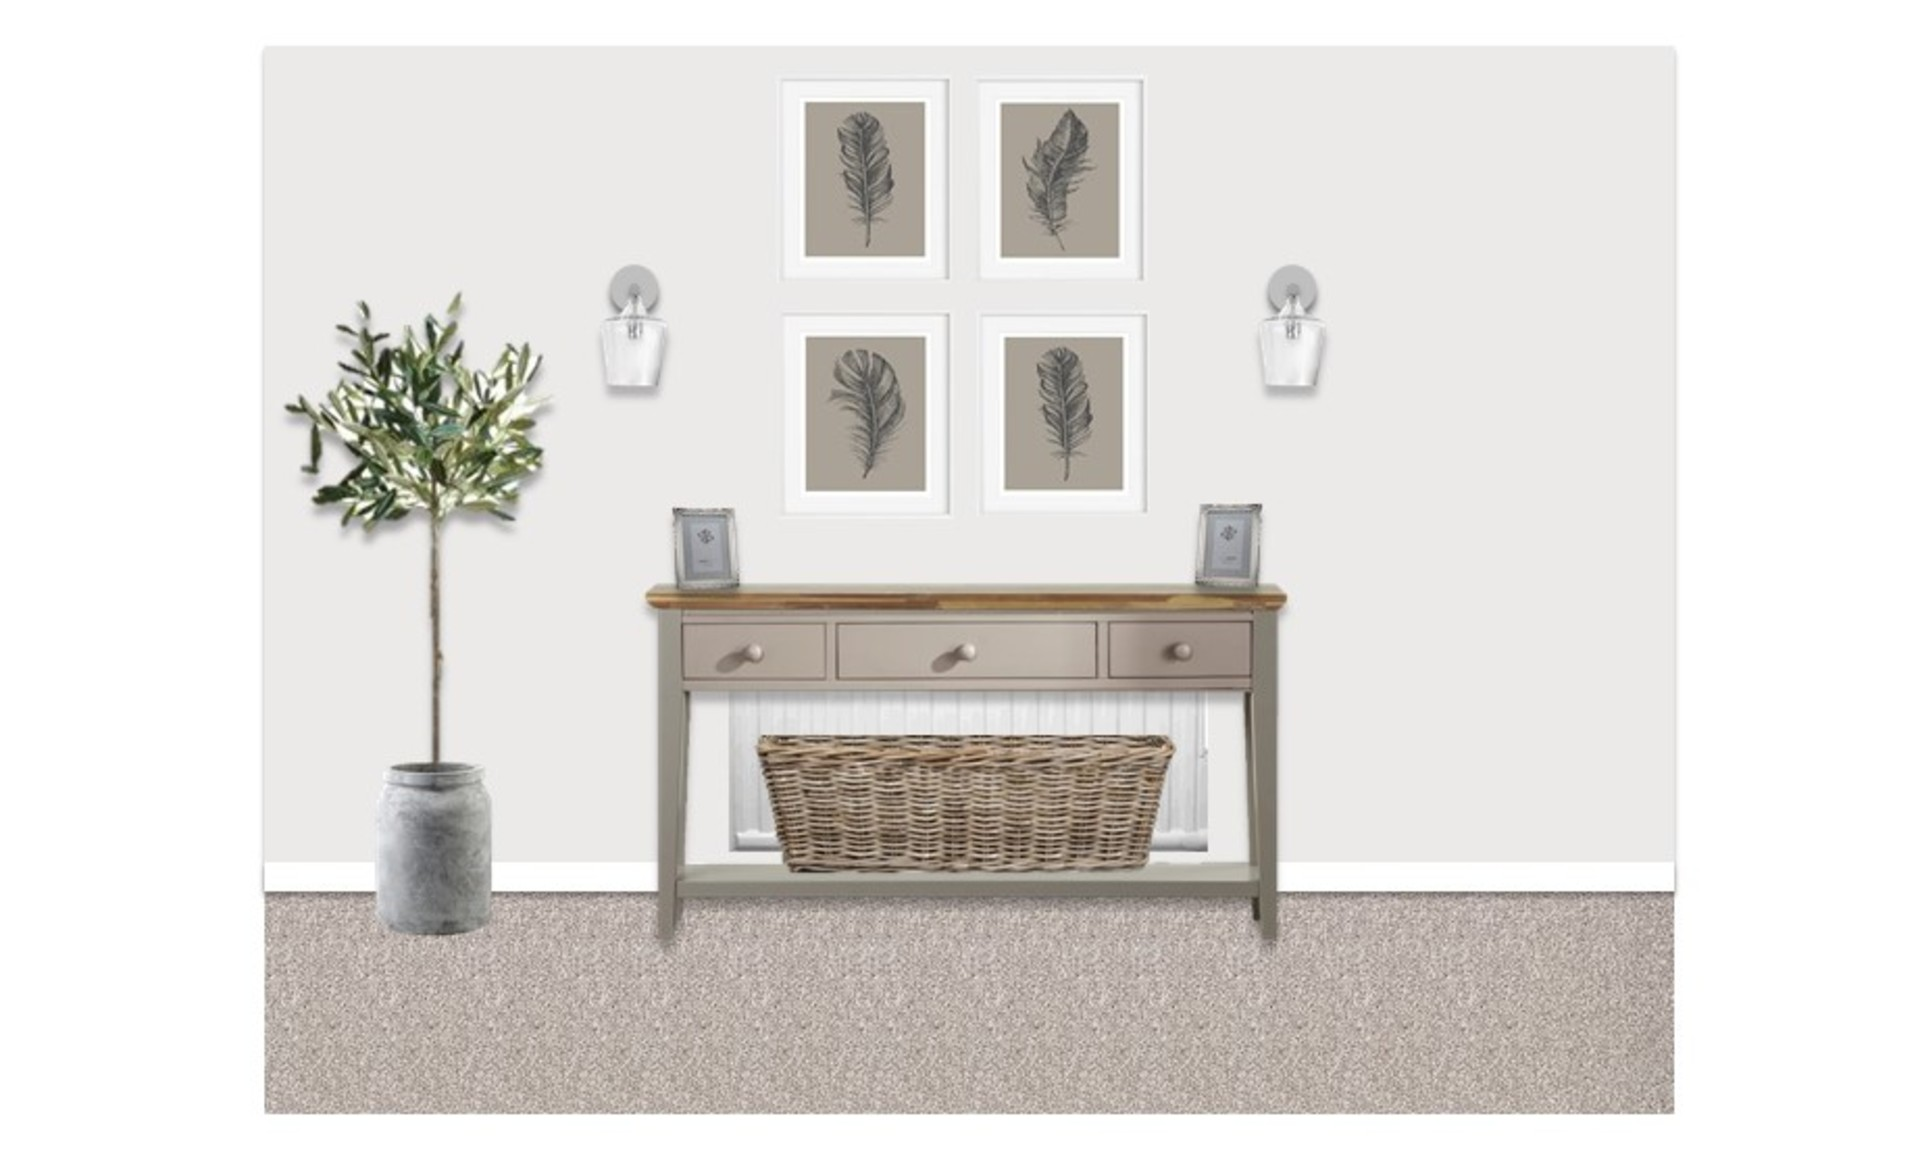 2D visual showing feather gallery wall artwork with indoor greenery and traditional country sideboard